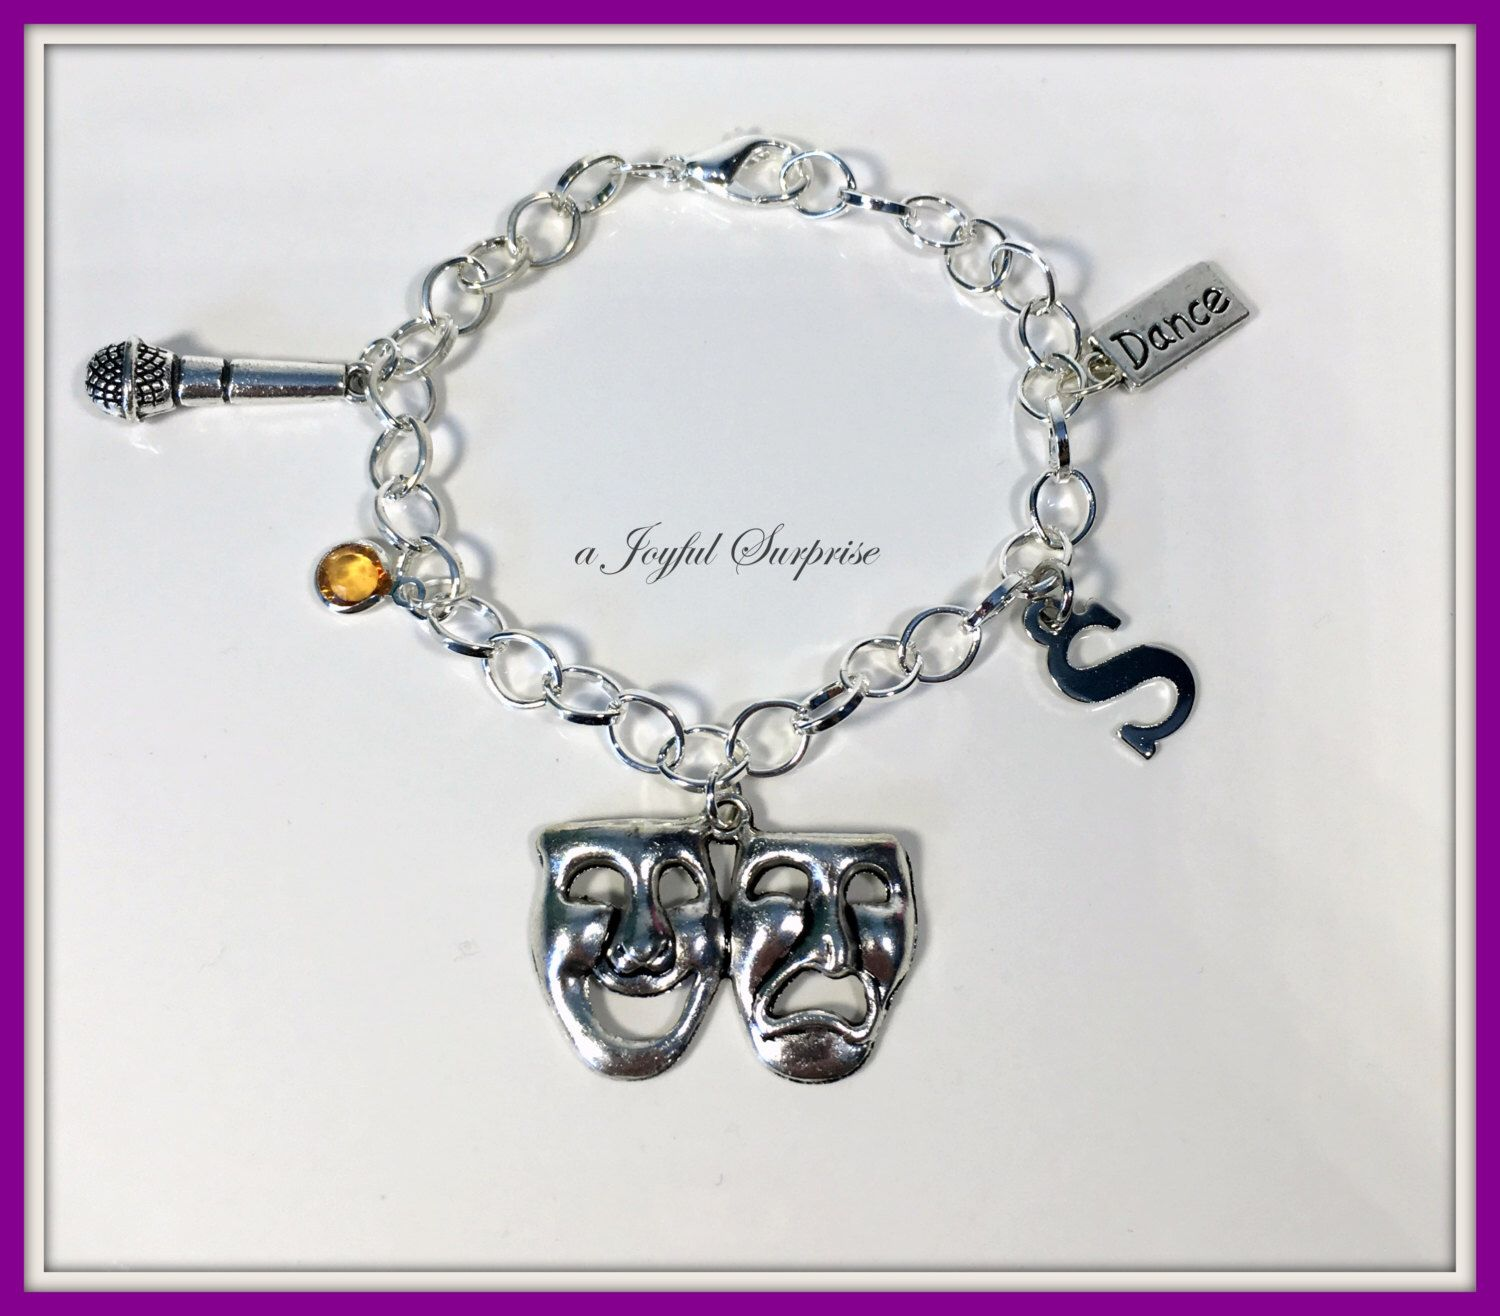 Triple Threat Charm Bracelet, Theatre Gifts, Gift Jewelry, Drama Mask  Microphone Dance Initial